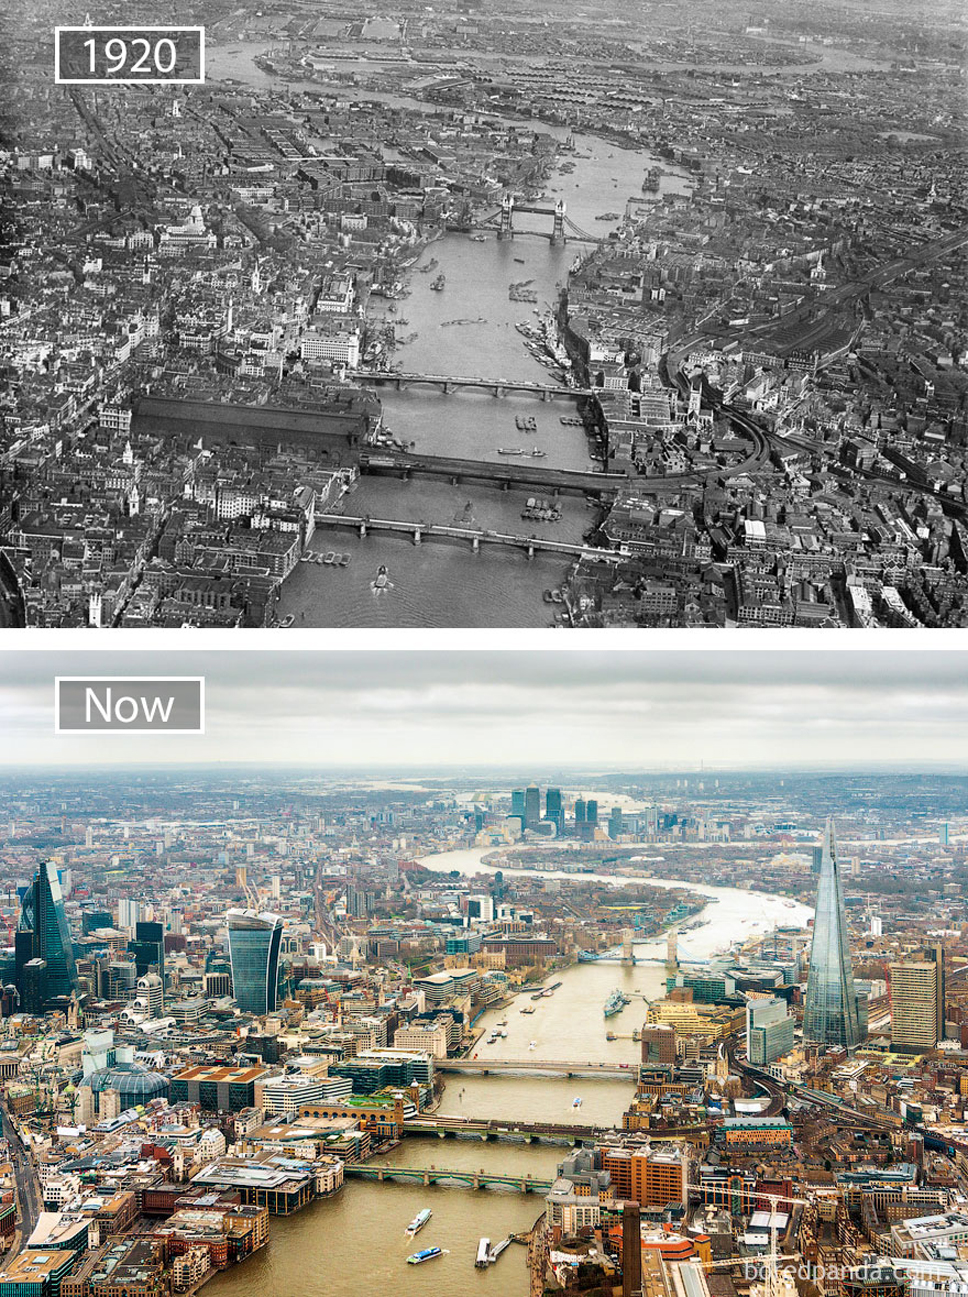 how-famous-city-changed-timelapse-evolution-before-after-22-577cc8e7010da__880